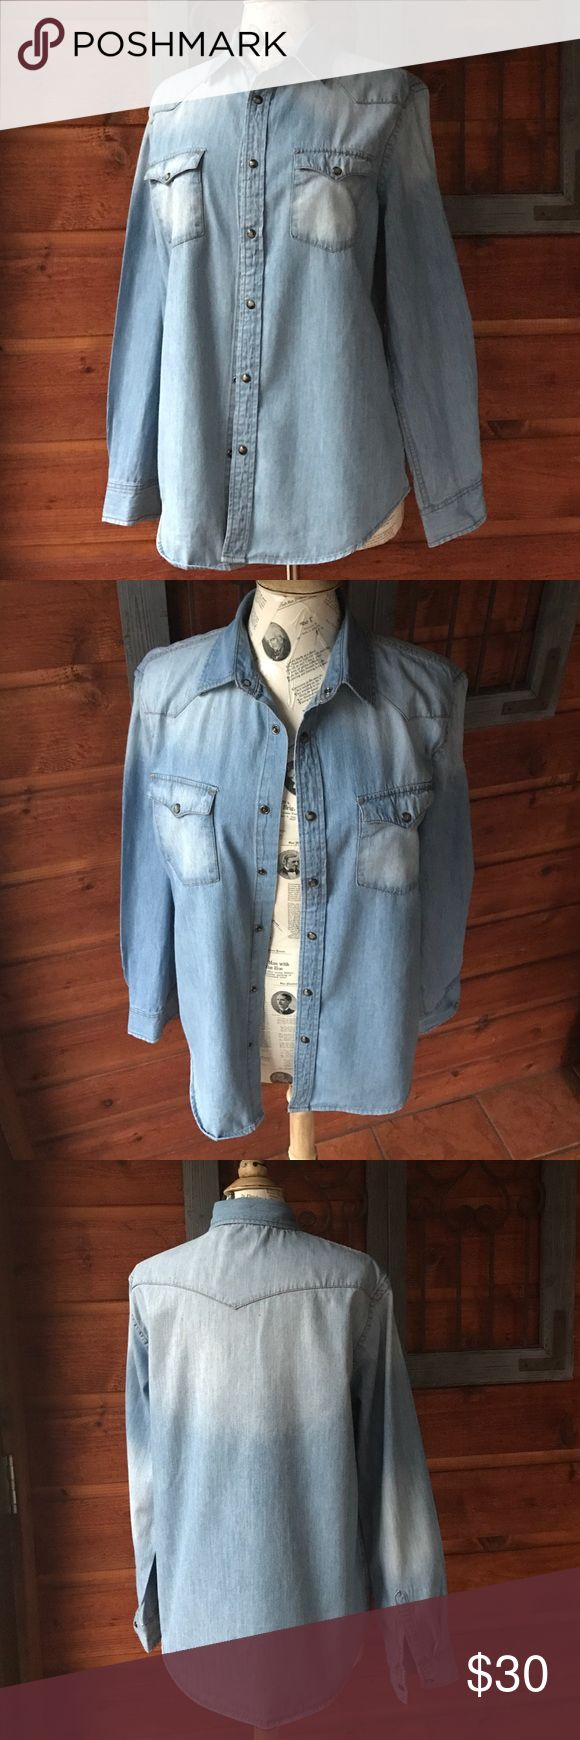 Mossimo denim shirt snap buttons size medium Mossimo light denim western cut shirt. Snap app buttons. Like new and in great condition. Size medium. Washed once and hung in the closet and never wore it.  Comes from a smoke free home and thanks for looking❤️😃😘✌️❤️ Mossimo Supply Co. Tops Button Down Shirts